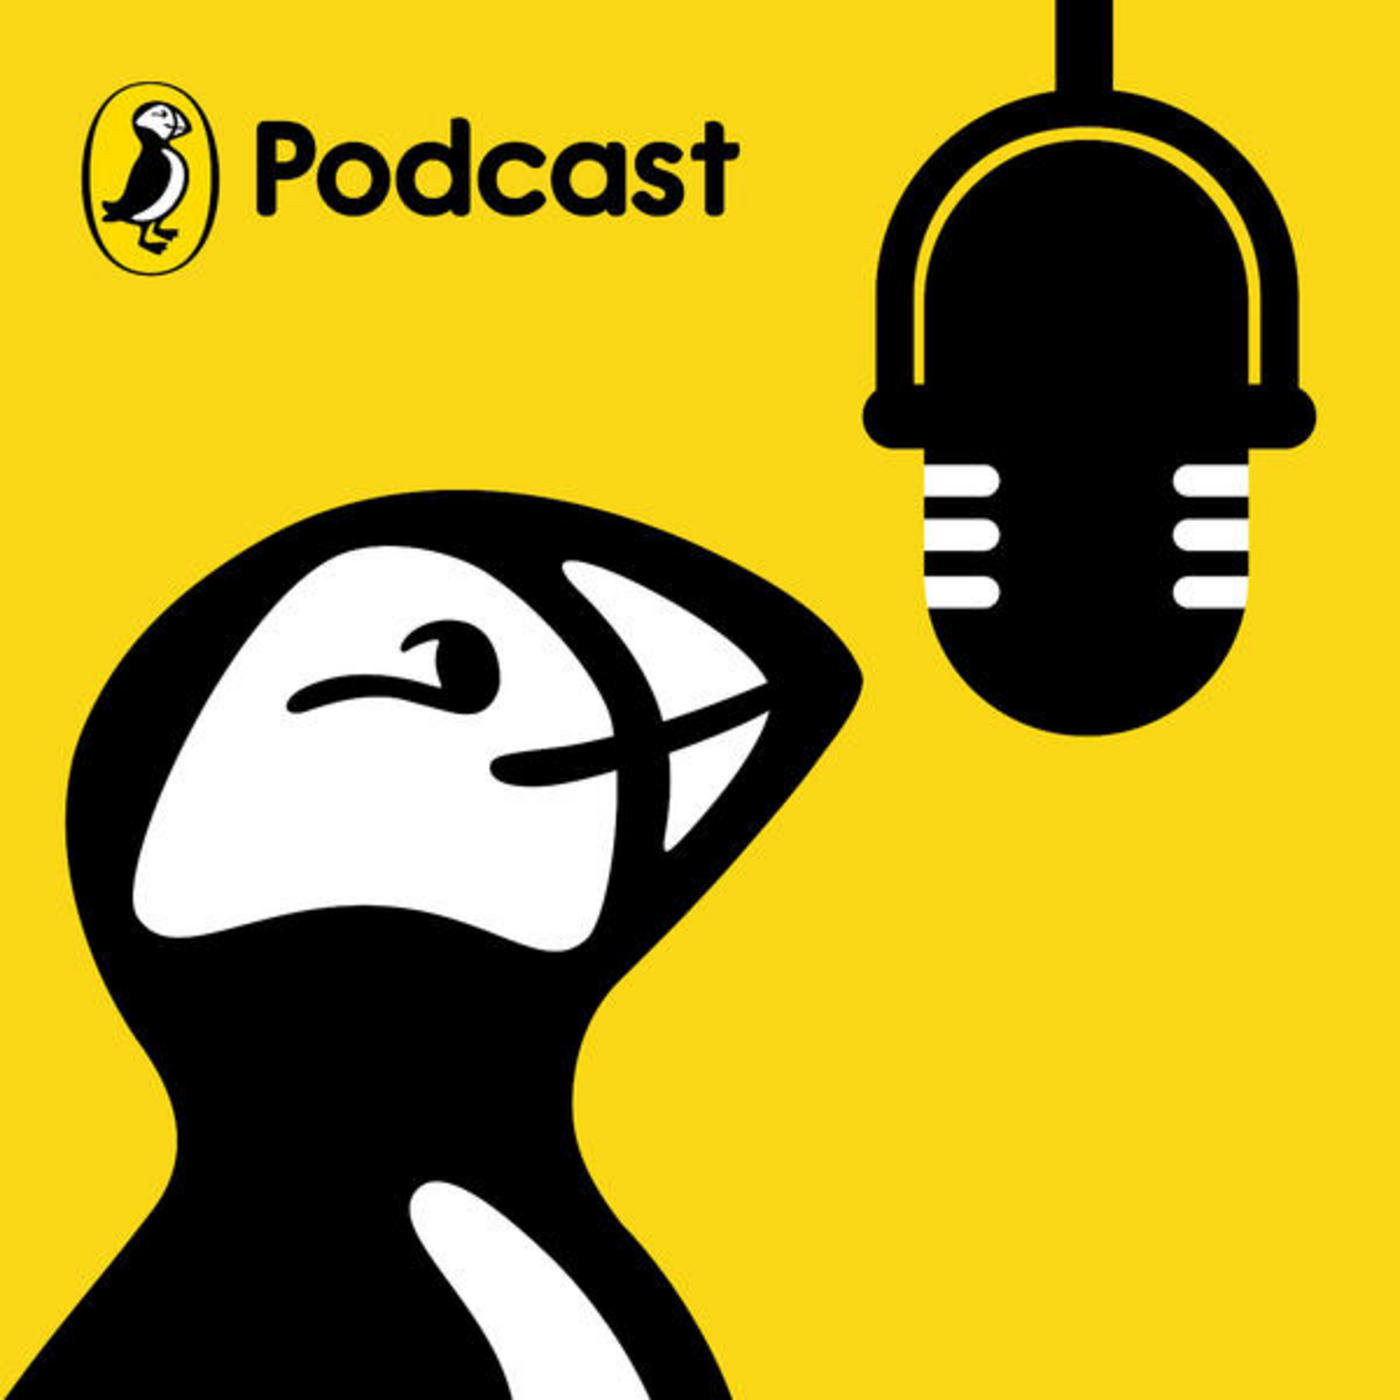 Puffin Podcast Episode 10: Pirates, Parrots and Plunderrrr